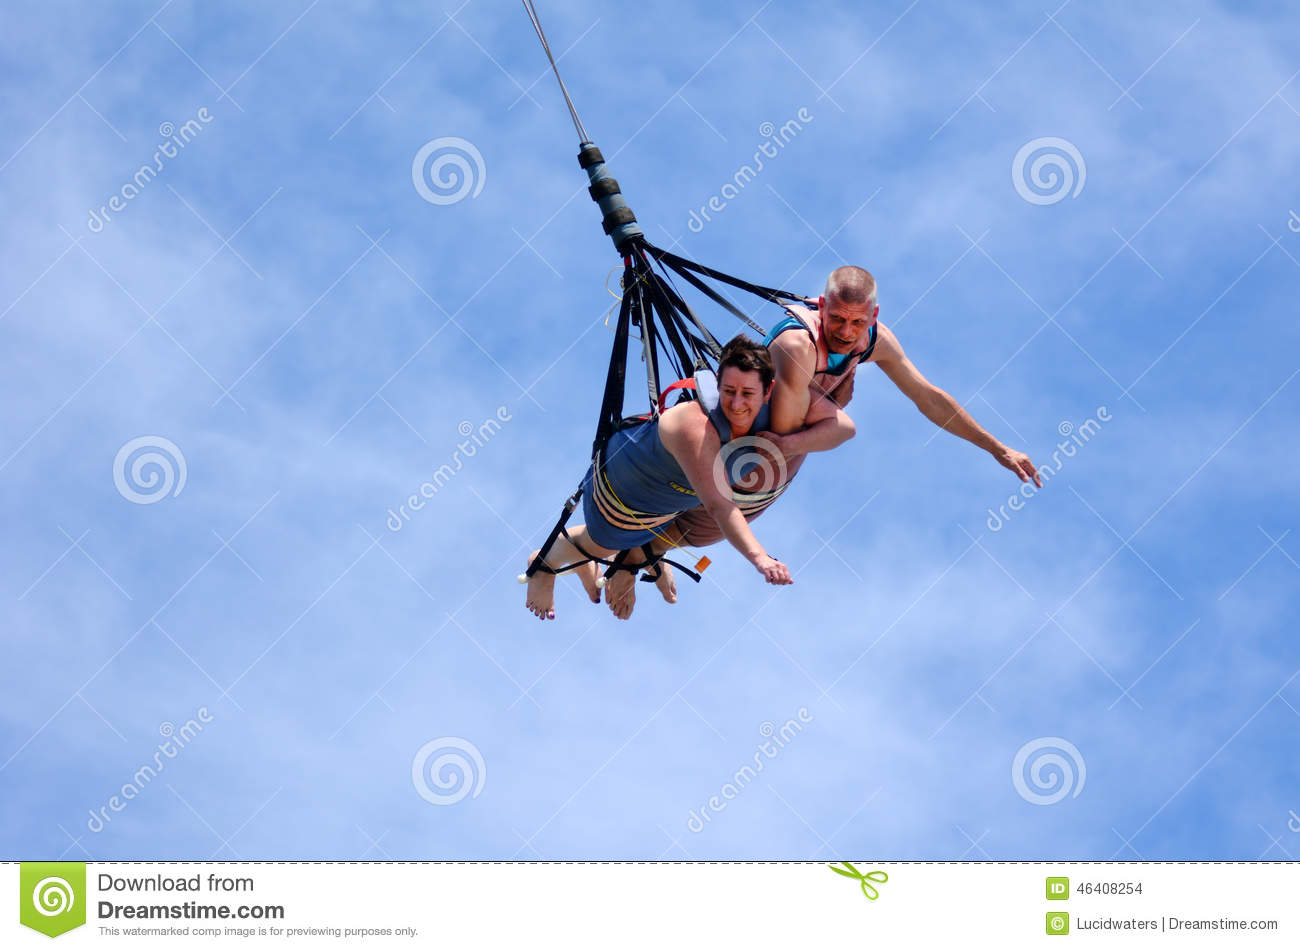 Bungee jumping couple